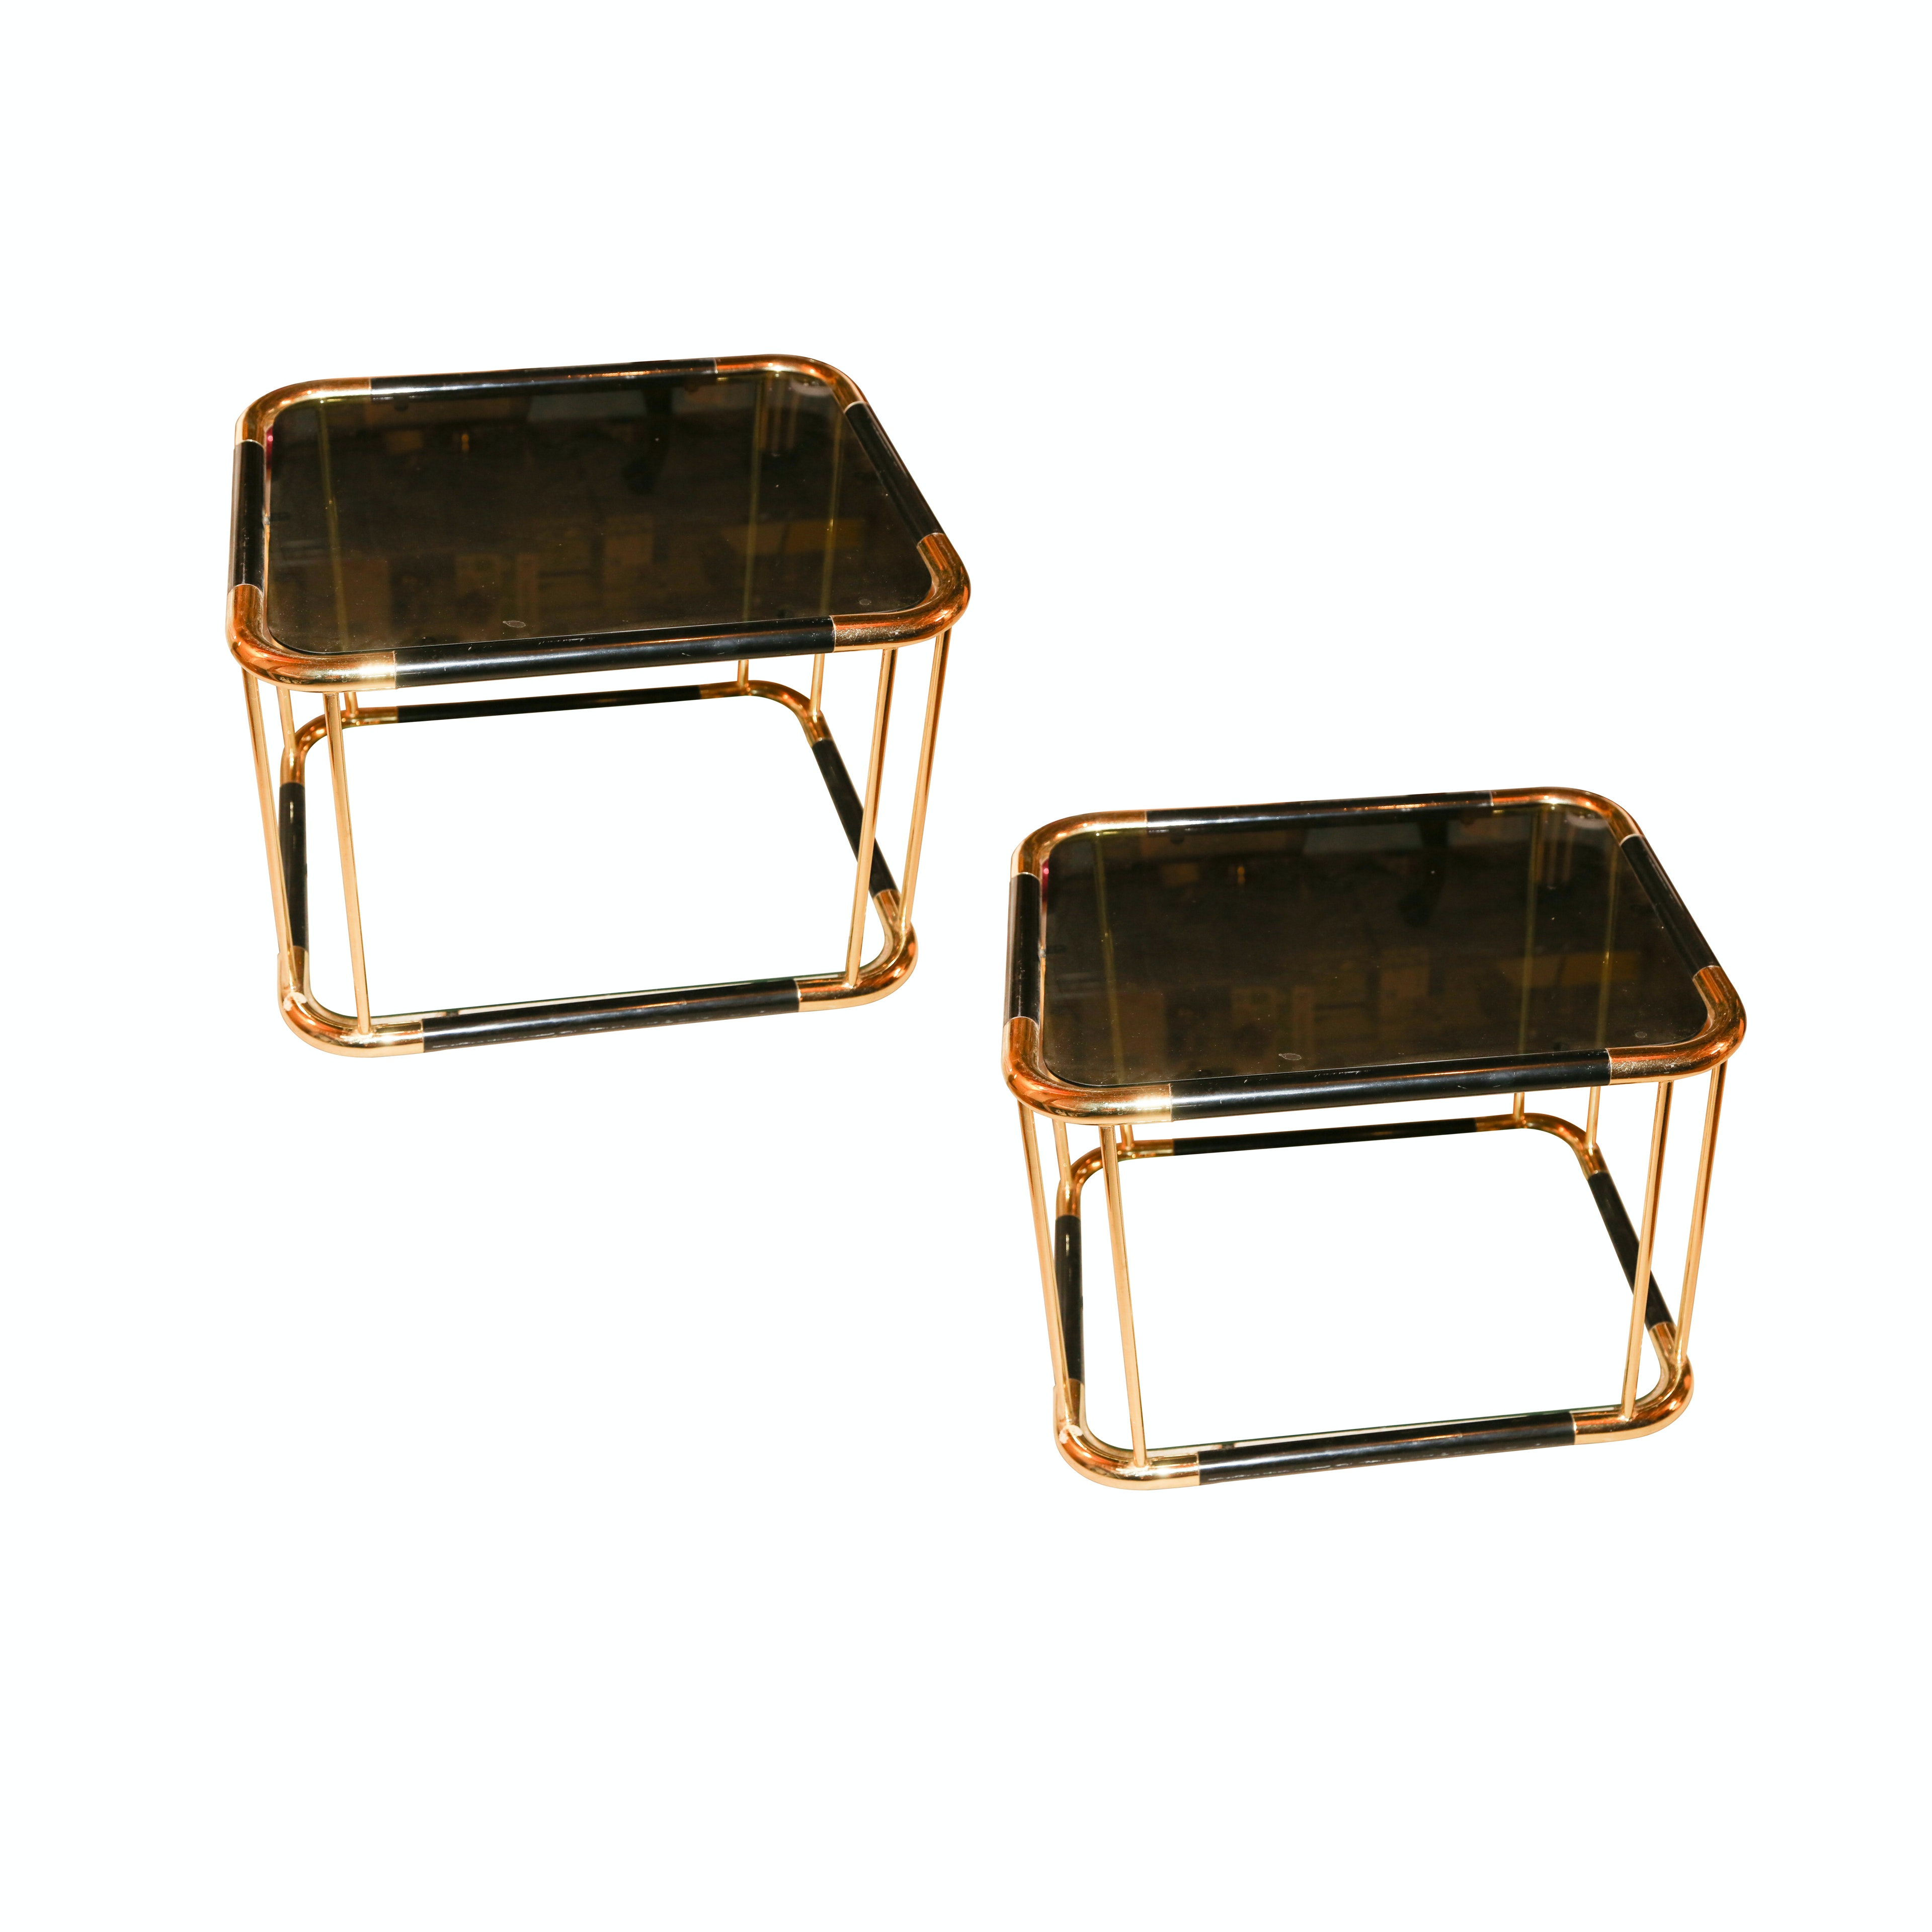 Two Vintage Glass Top Side Tables